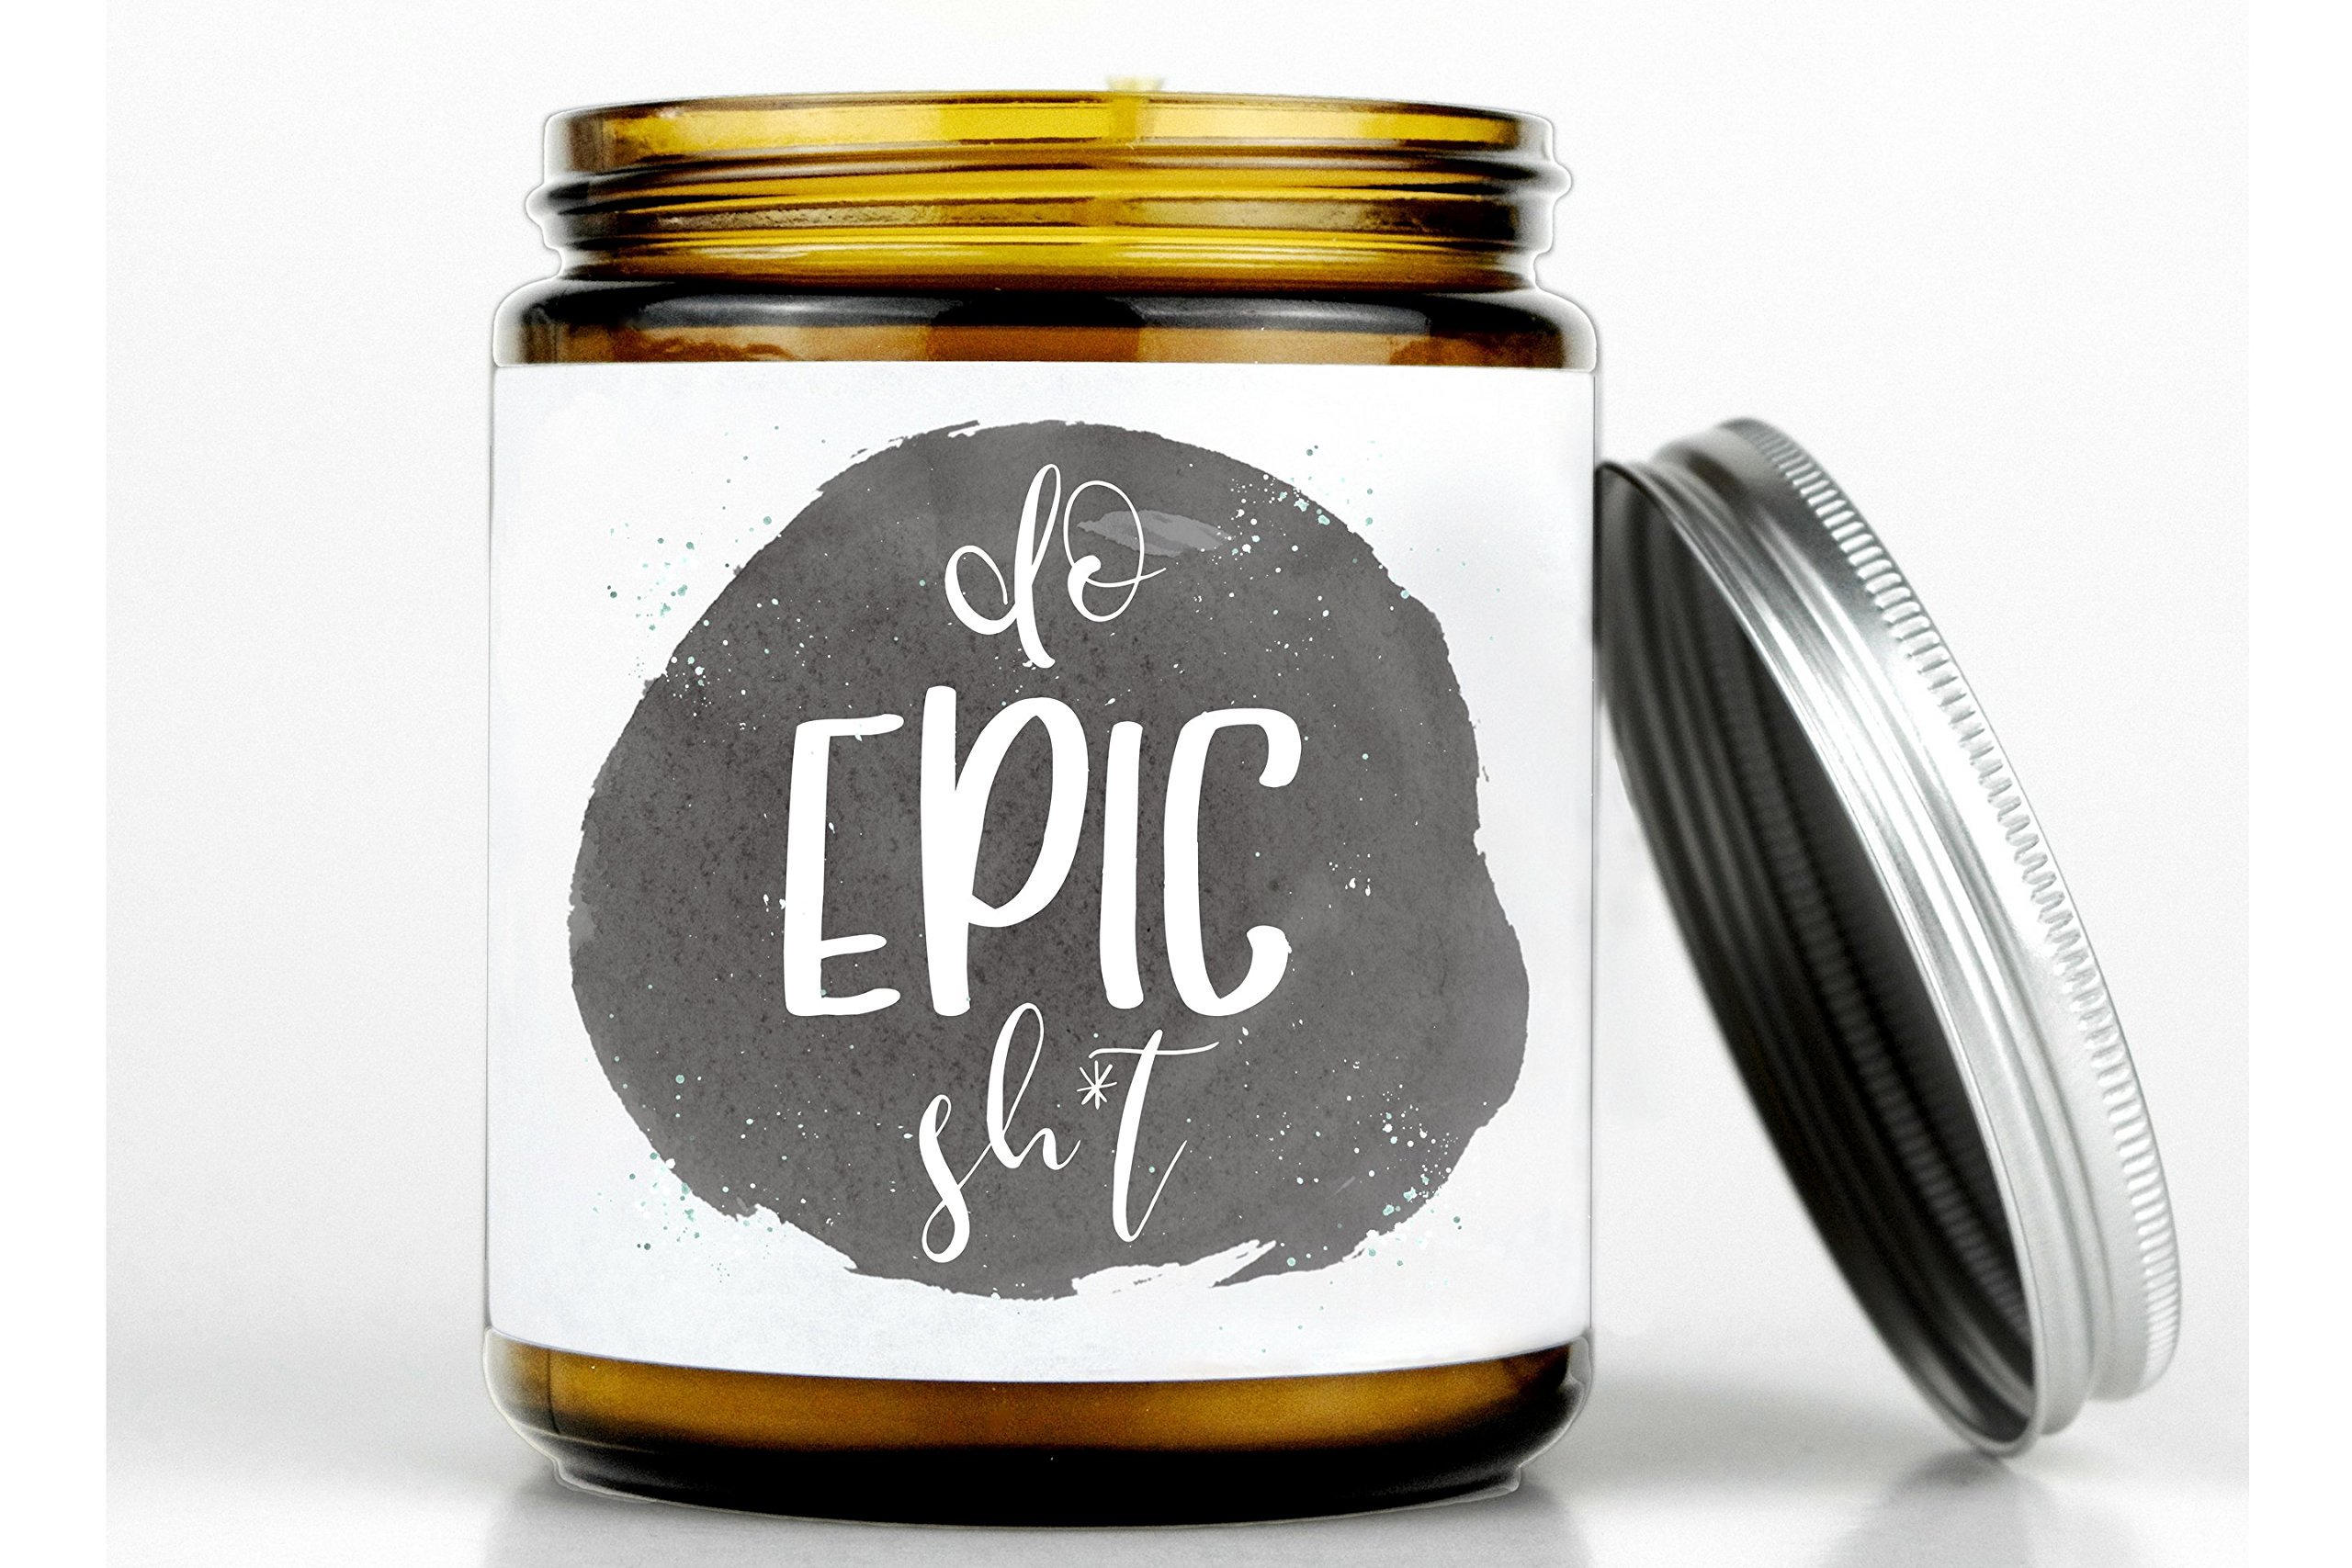 Do epic sht candle, funny graduation gift, graduation gift for her, college graduation gift, nursing grad gift, 100% natural beeswax candle by Bountiful Giving Tree (Image #1)